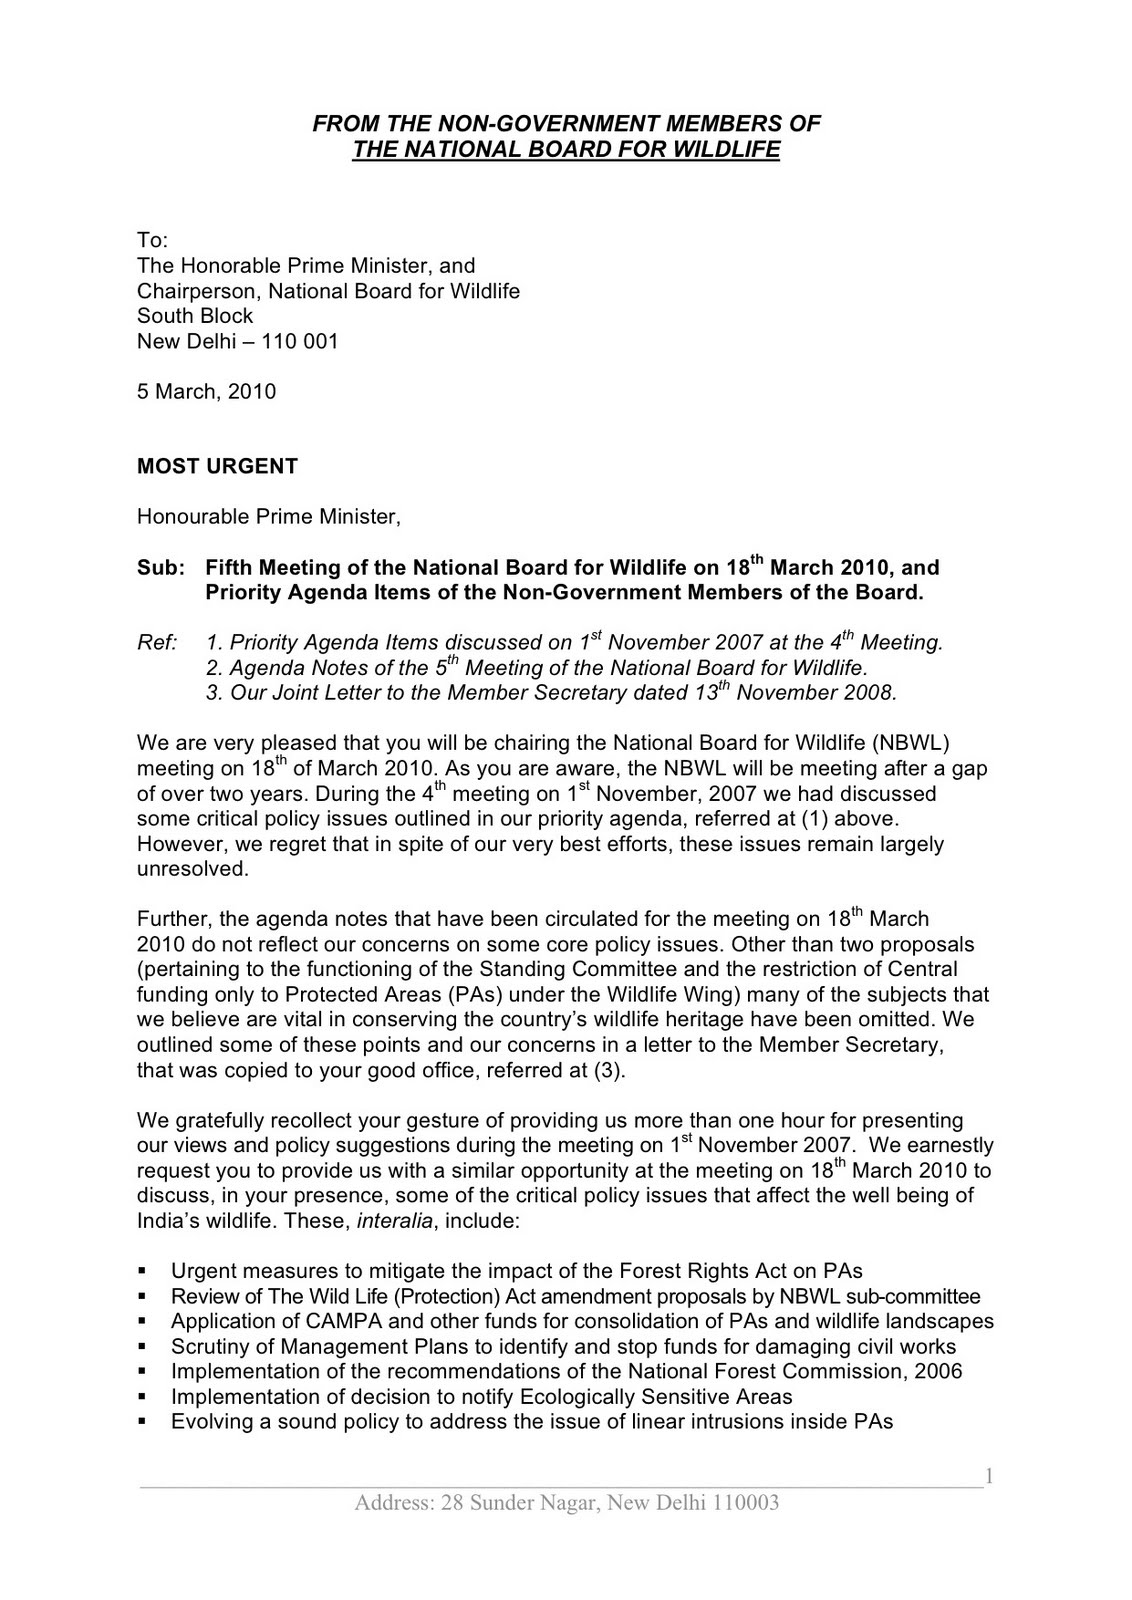 Nbwl matters letter to pm on 5th meeting of nbwl march 5 2010 letter to pm on 5th meeting of nbwl march 5 2010 thecheapjerseys Images